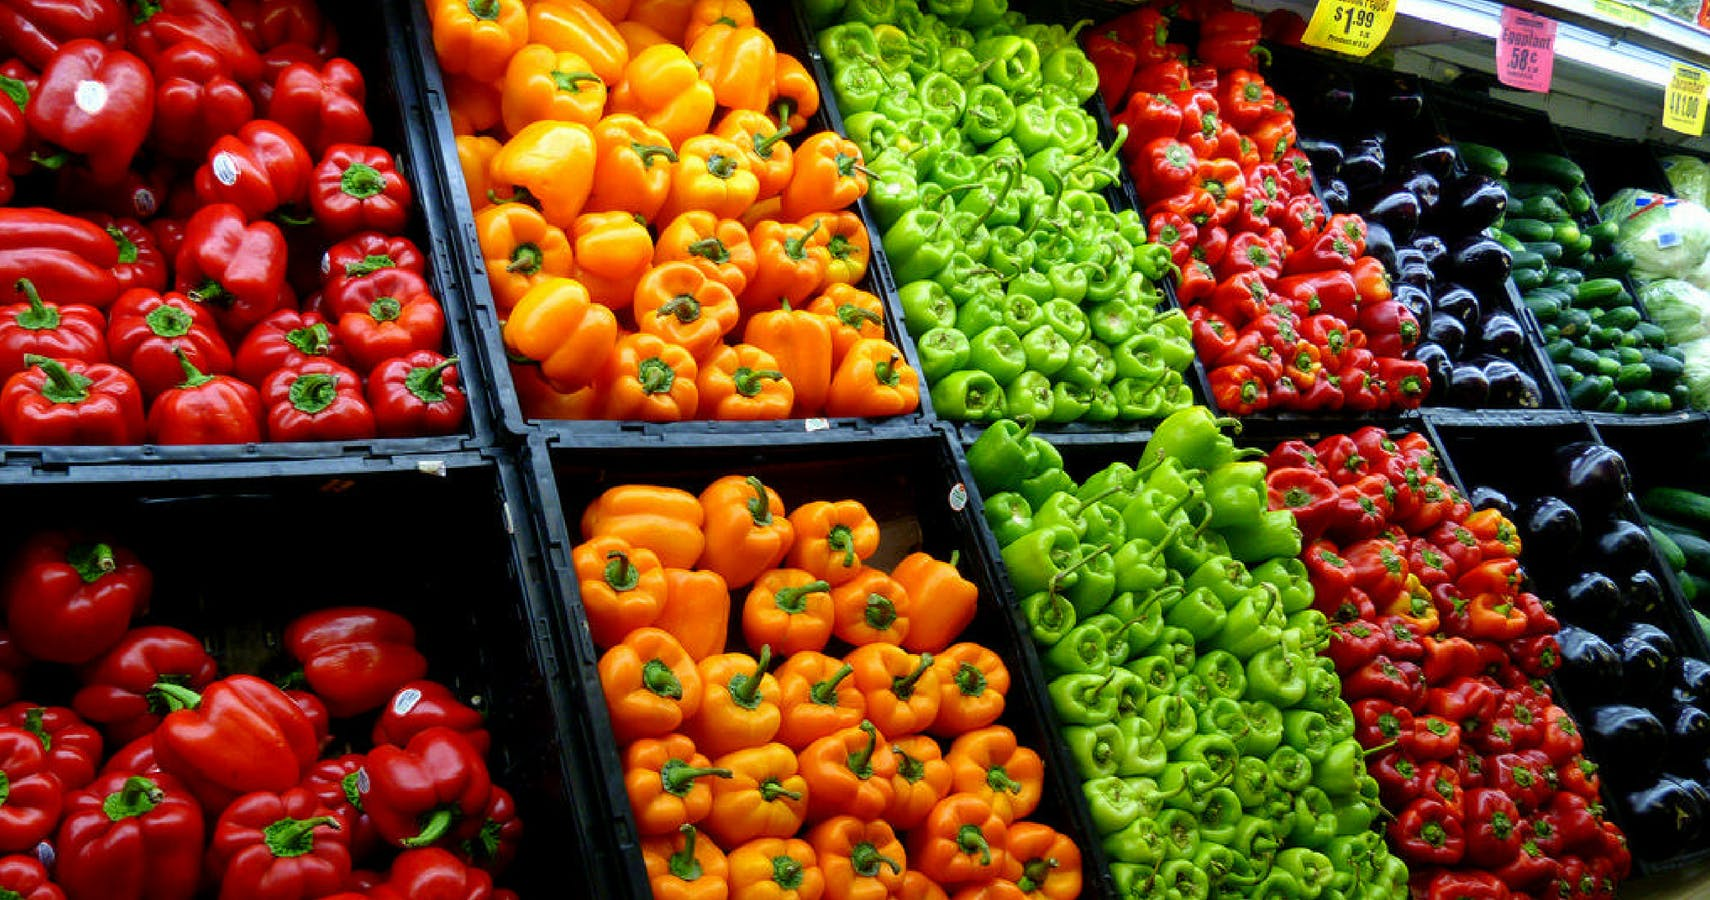 Why You Need To Wash Produce Before Eating It